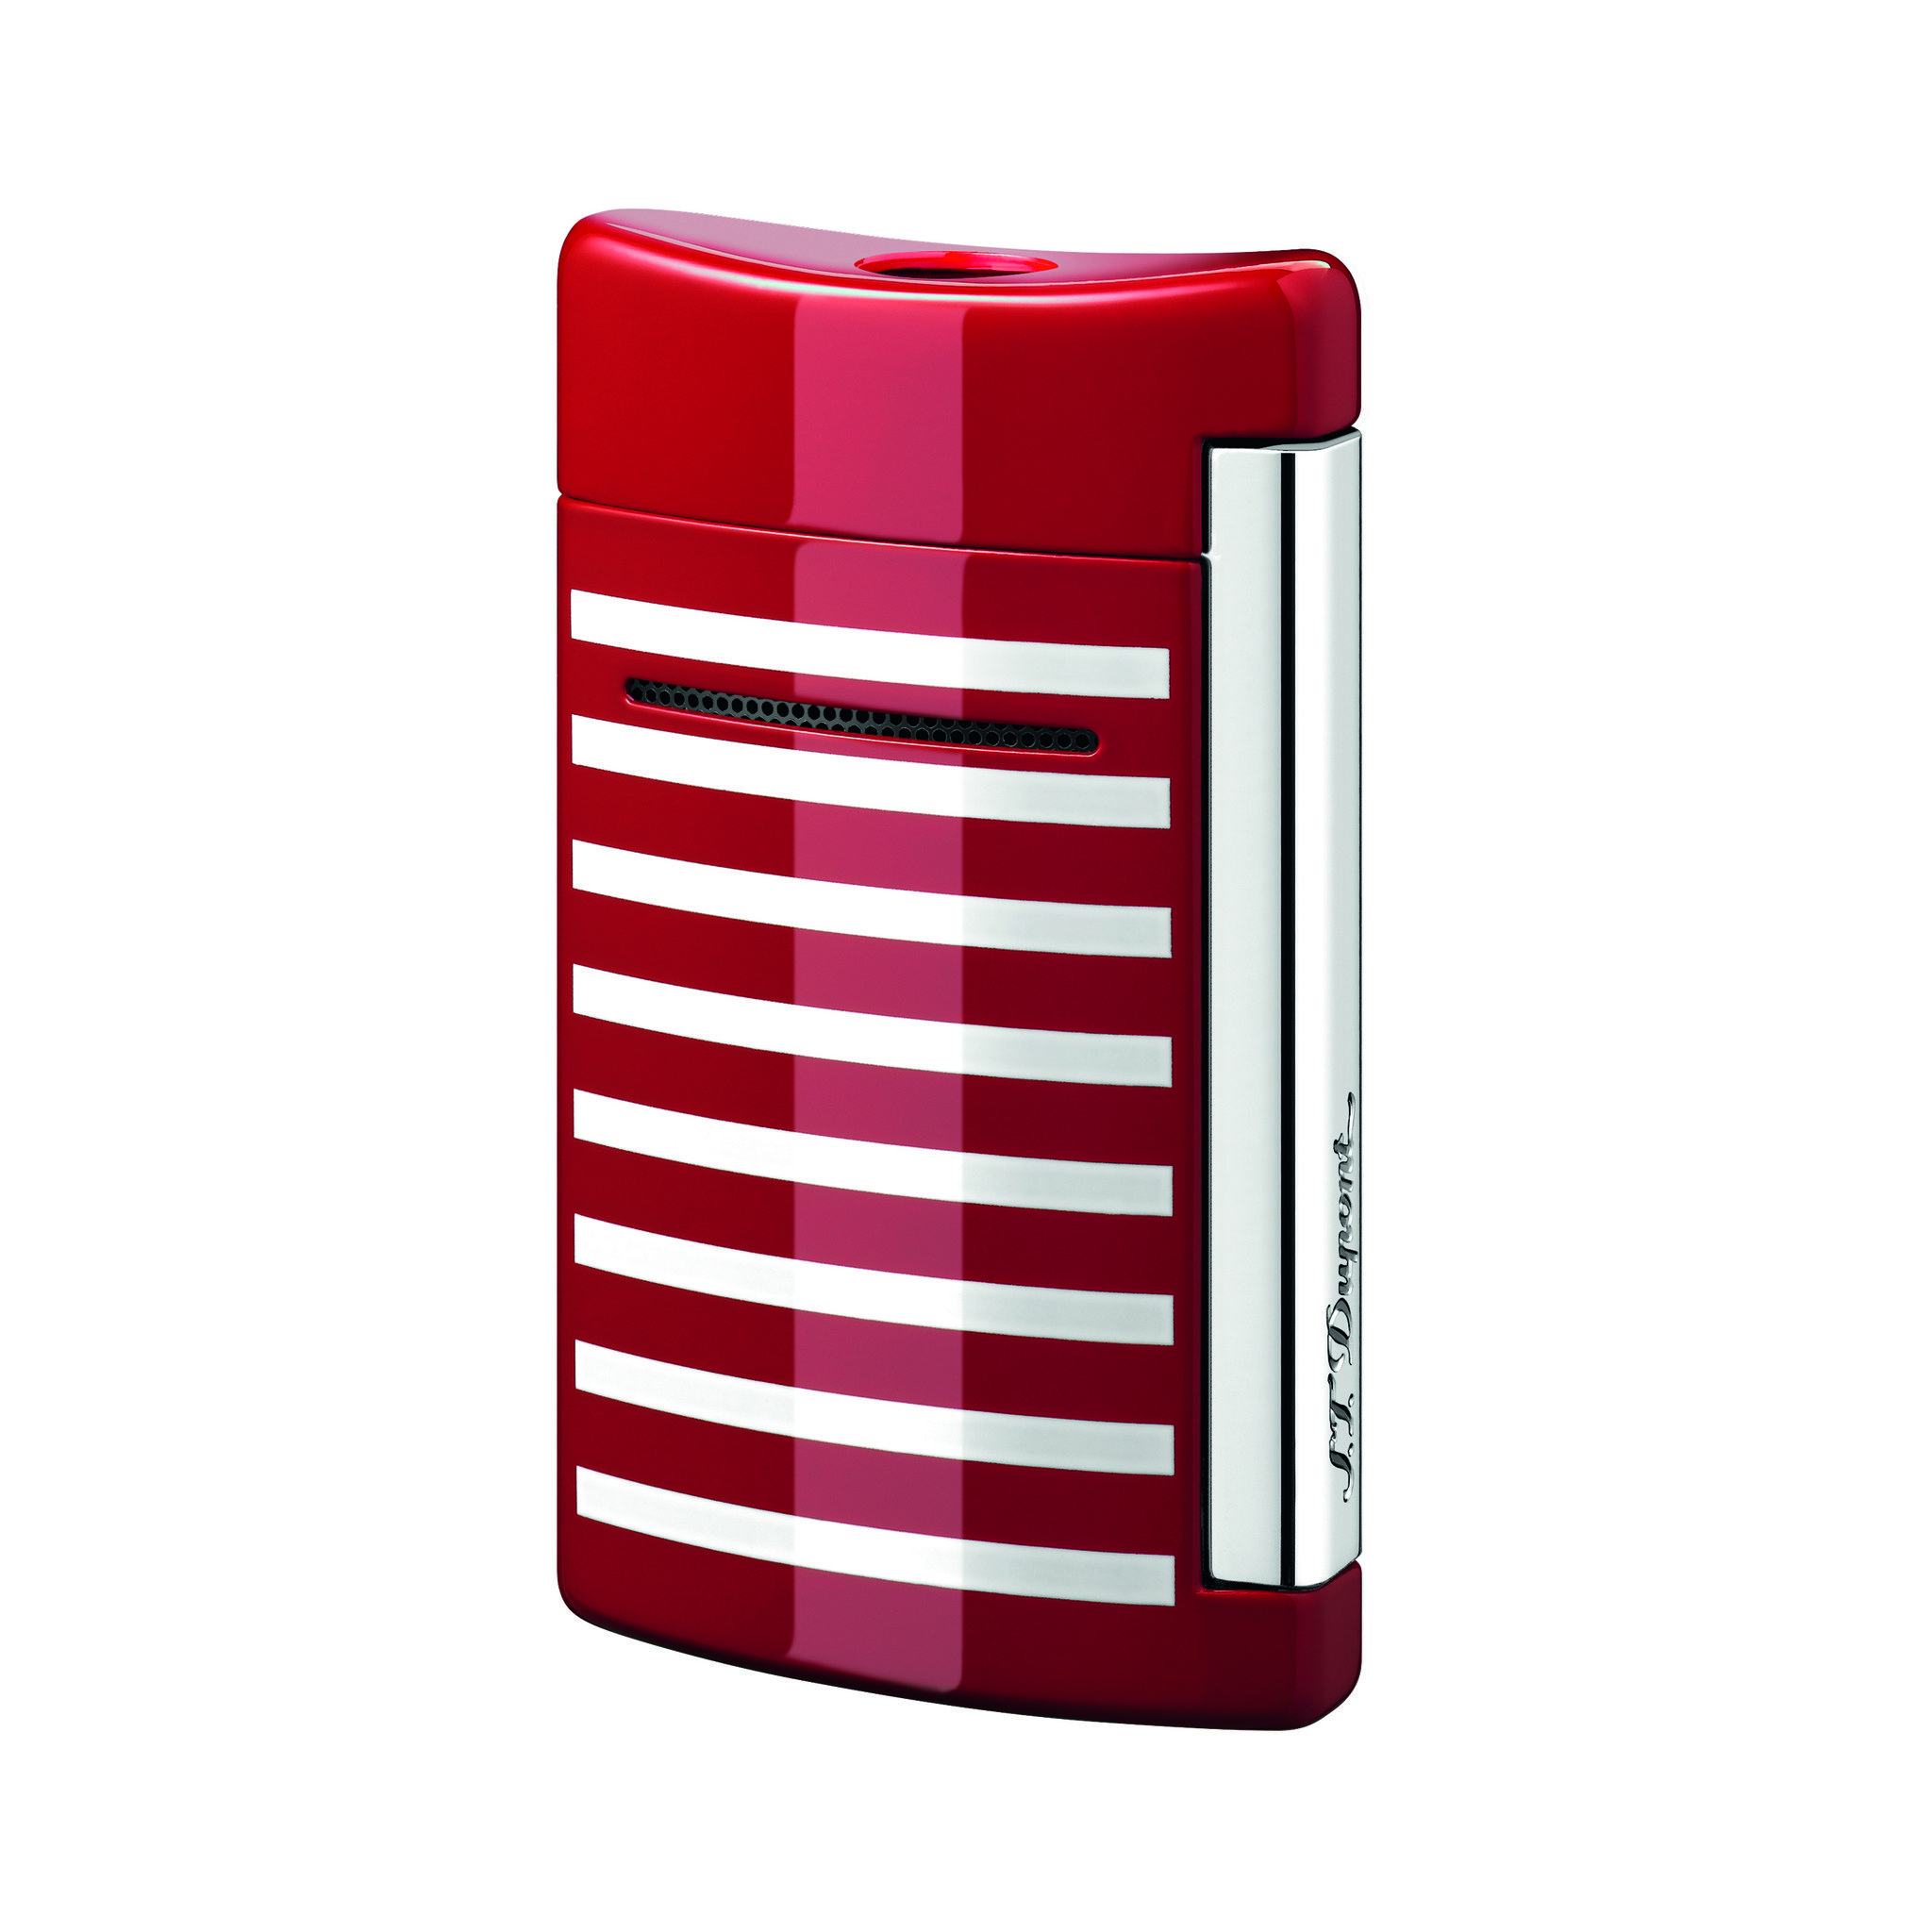 S.T. Dupont Minijet red white stripes (010107)